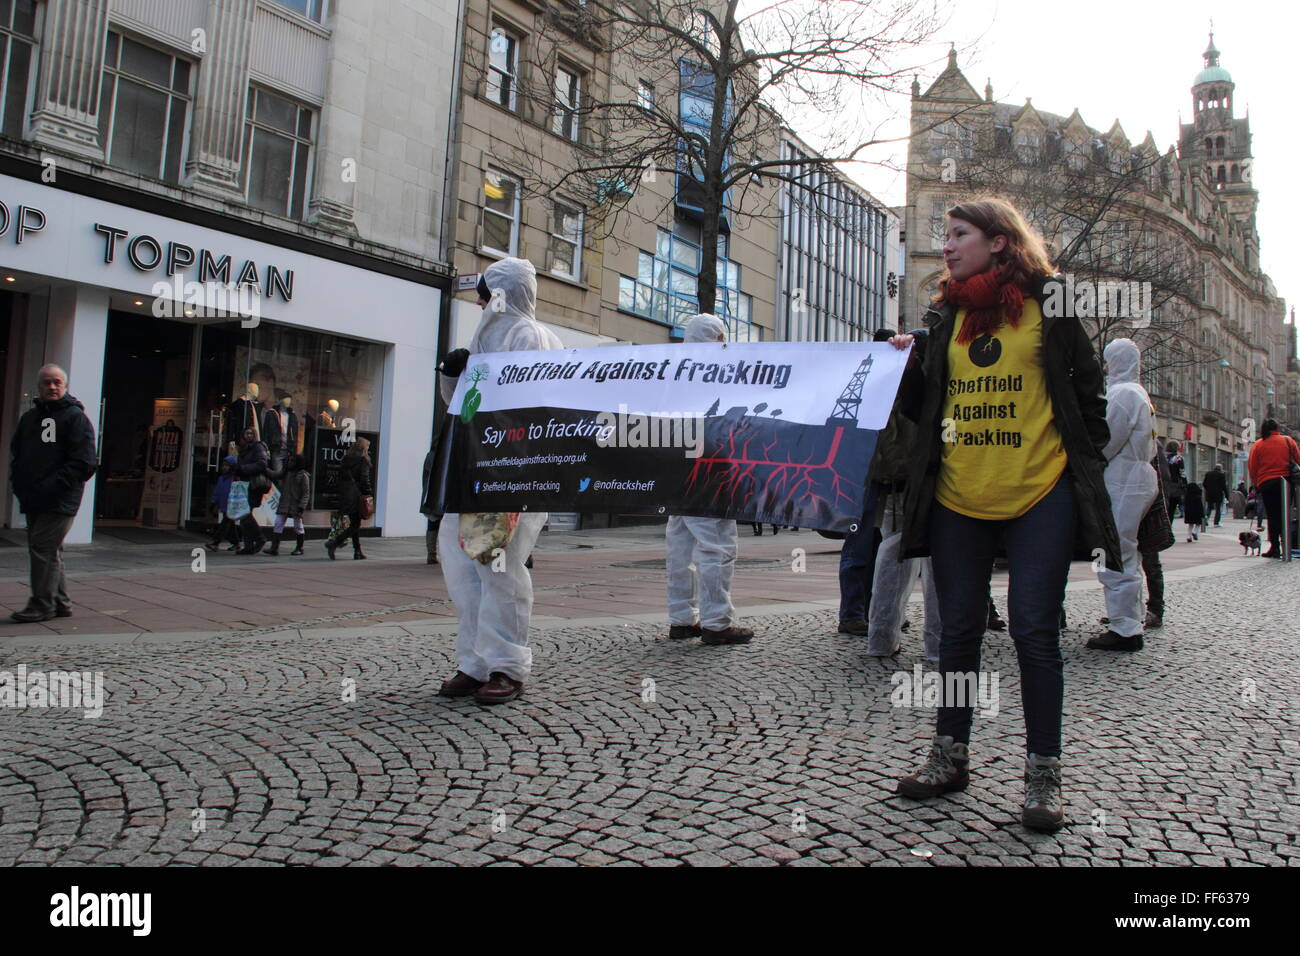 Protesters in Sheffield city centre campaign against fracking, Sheffield, South Yorkshire England UK - Stock Image